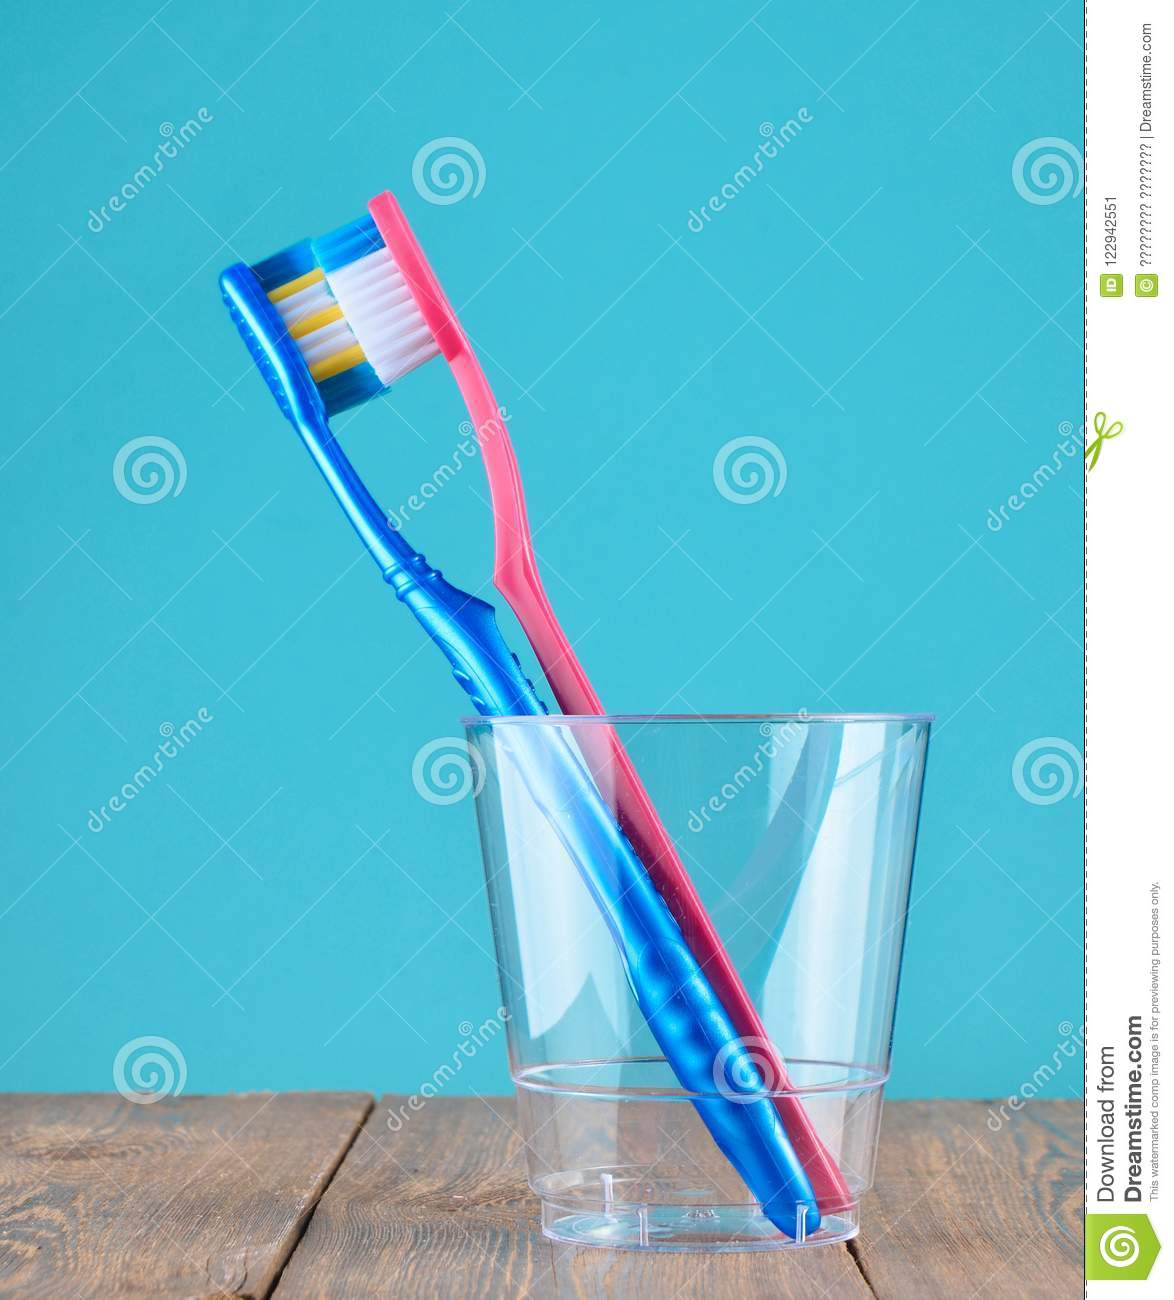 Two toothbrushes in a transparent plastic cup in the bathroom on a blue background, minimalism.